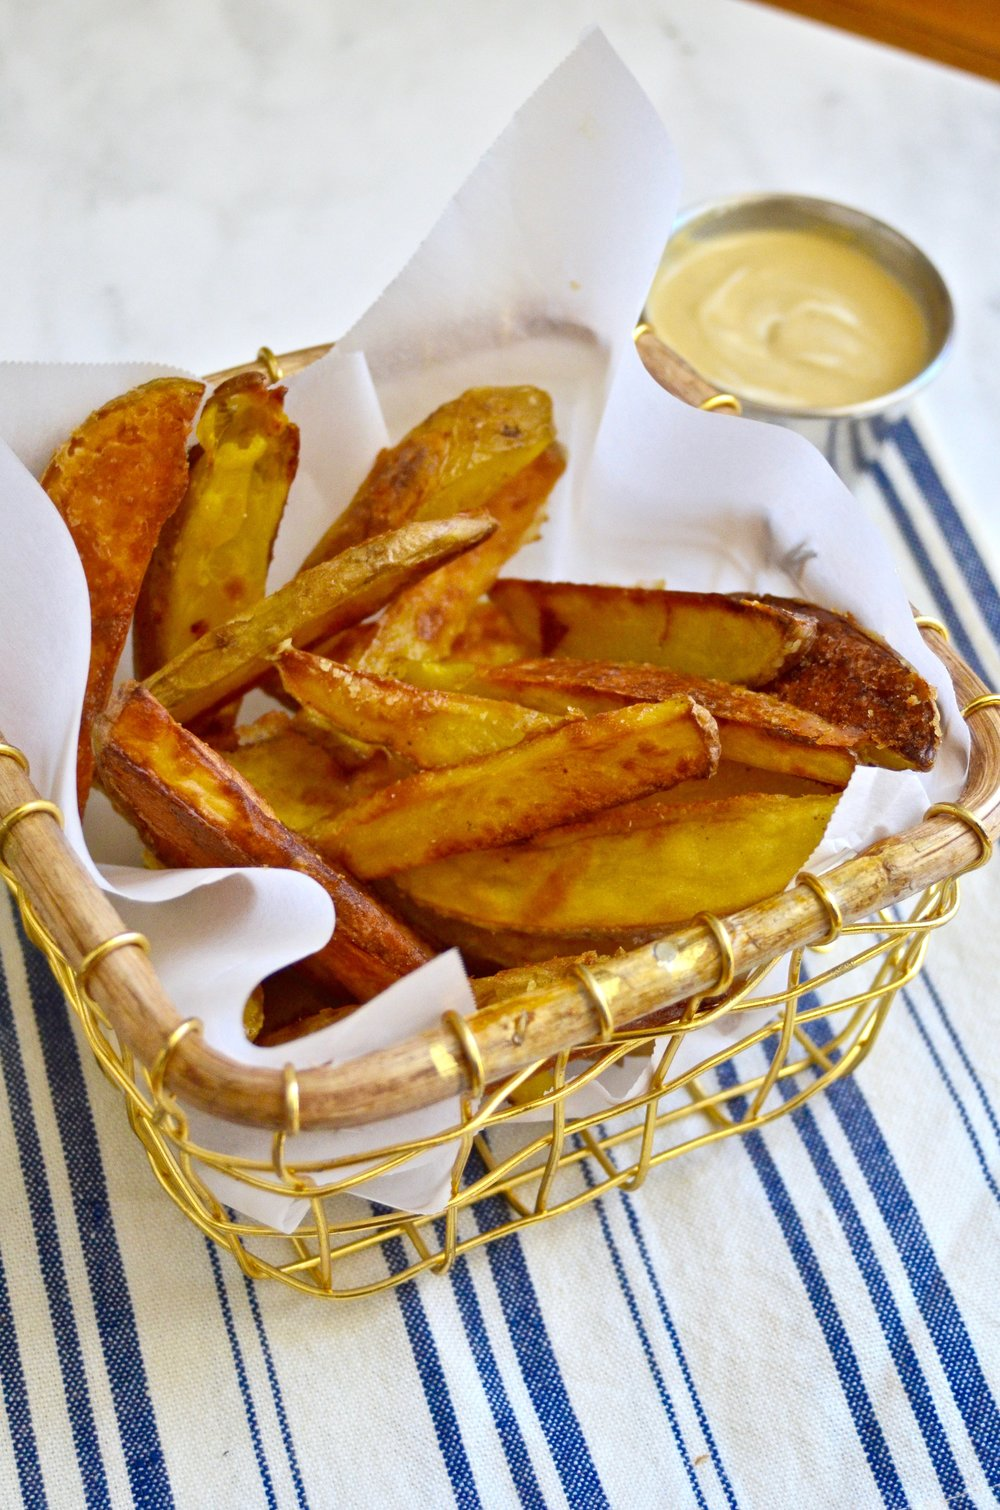 Crispy Baked French Fries | Recipe via @julinovotny #puremamas | vegan & gluten-free